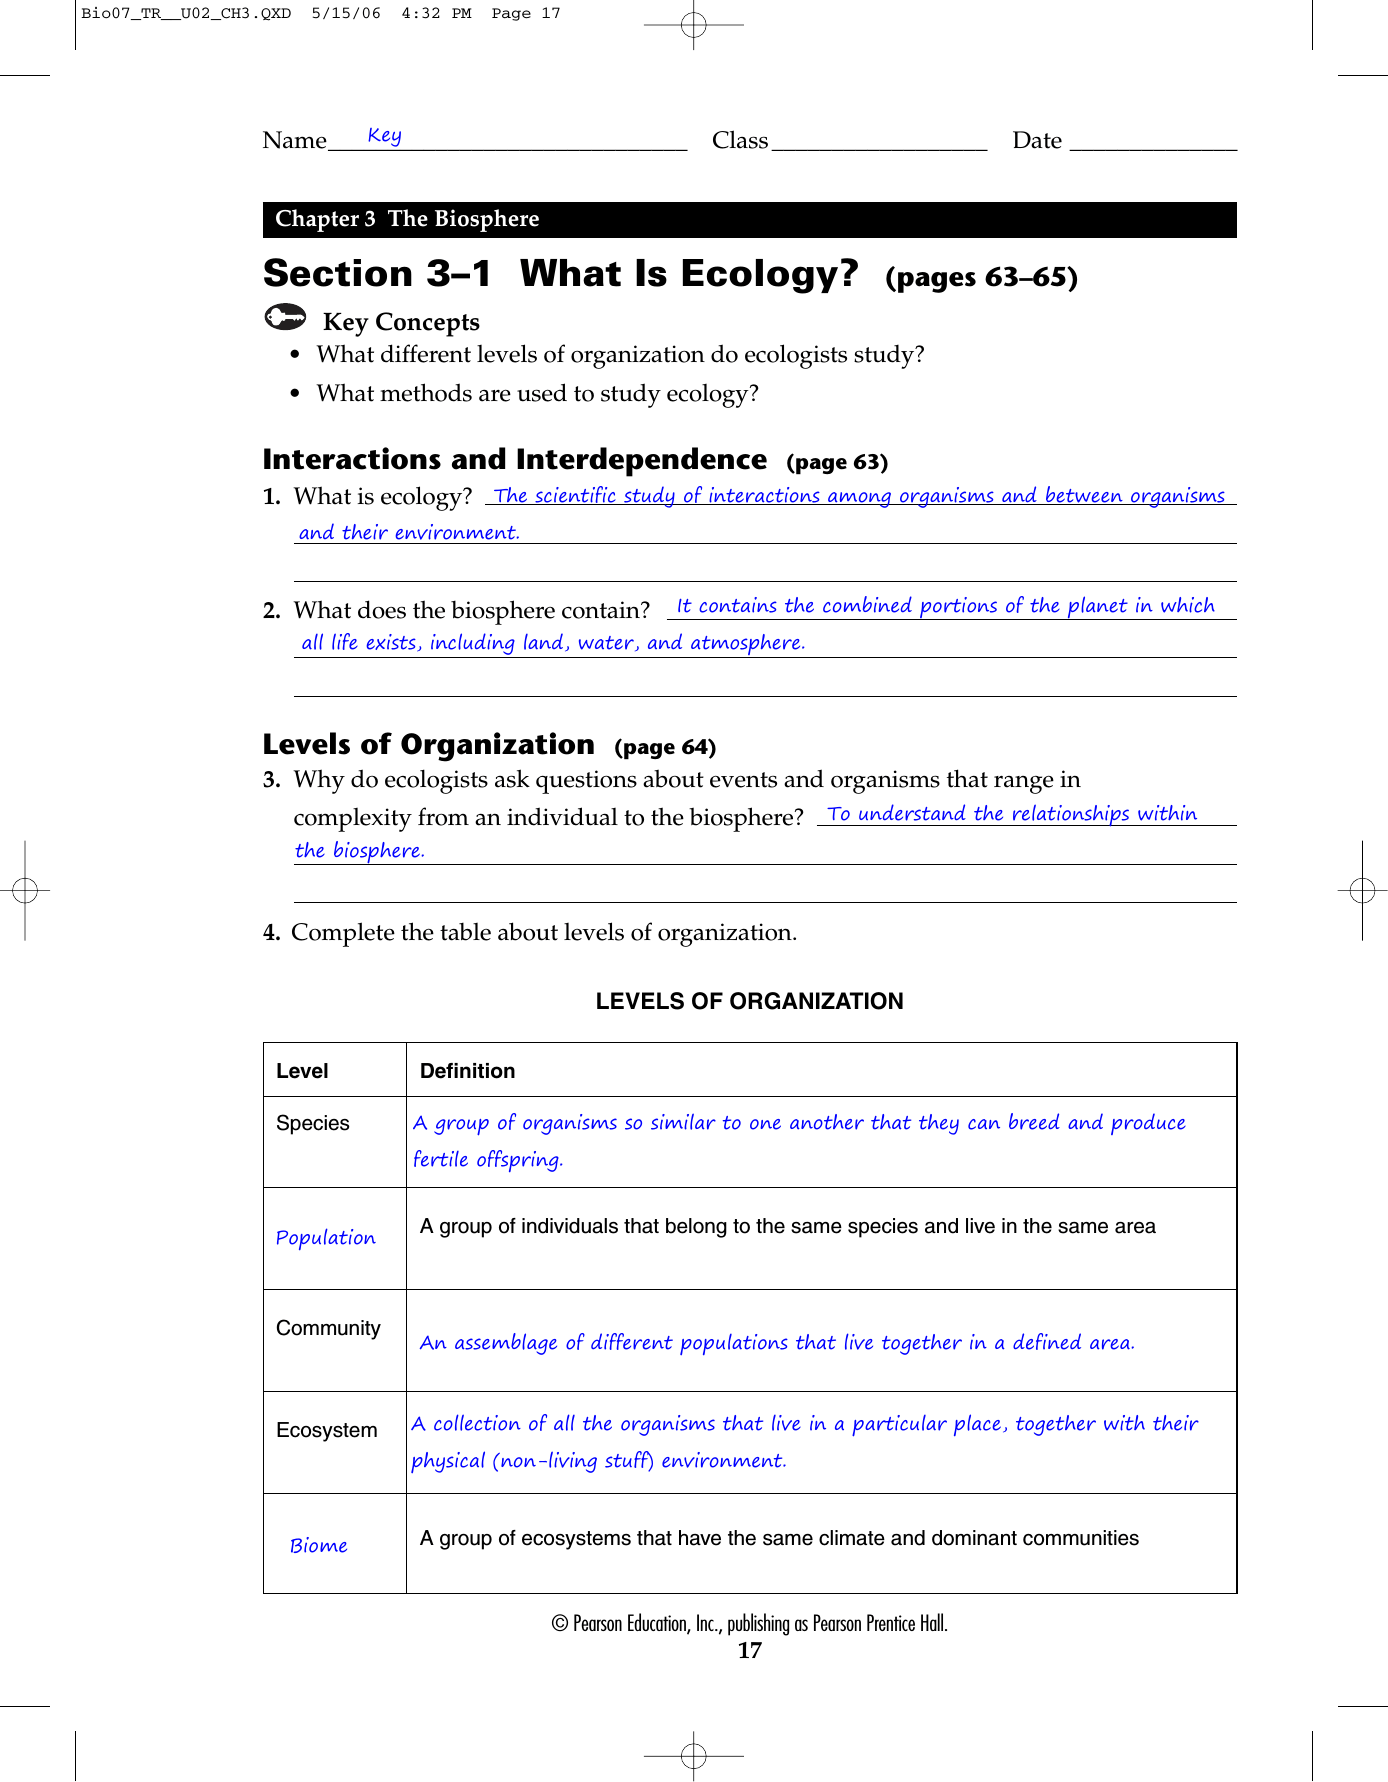 Chapter 3 Principles Of Ecology Worksheet Answers